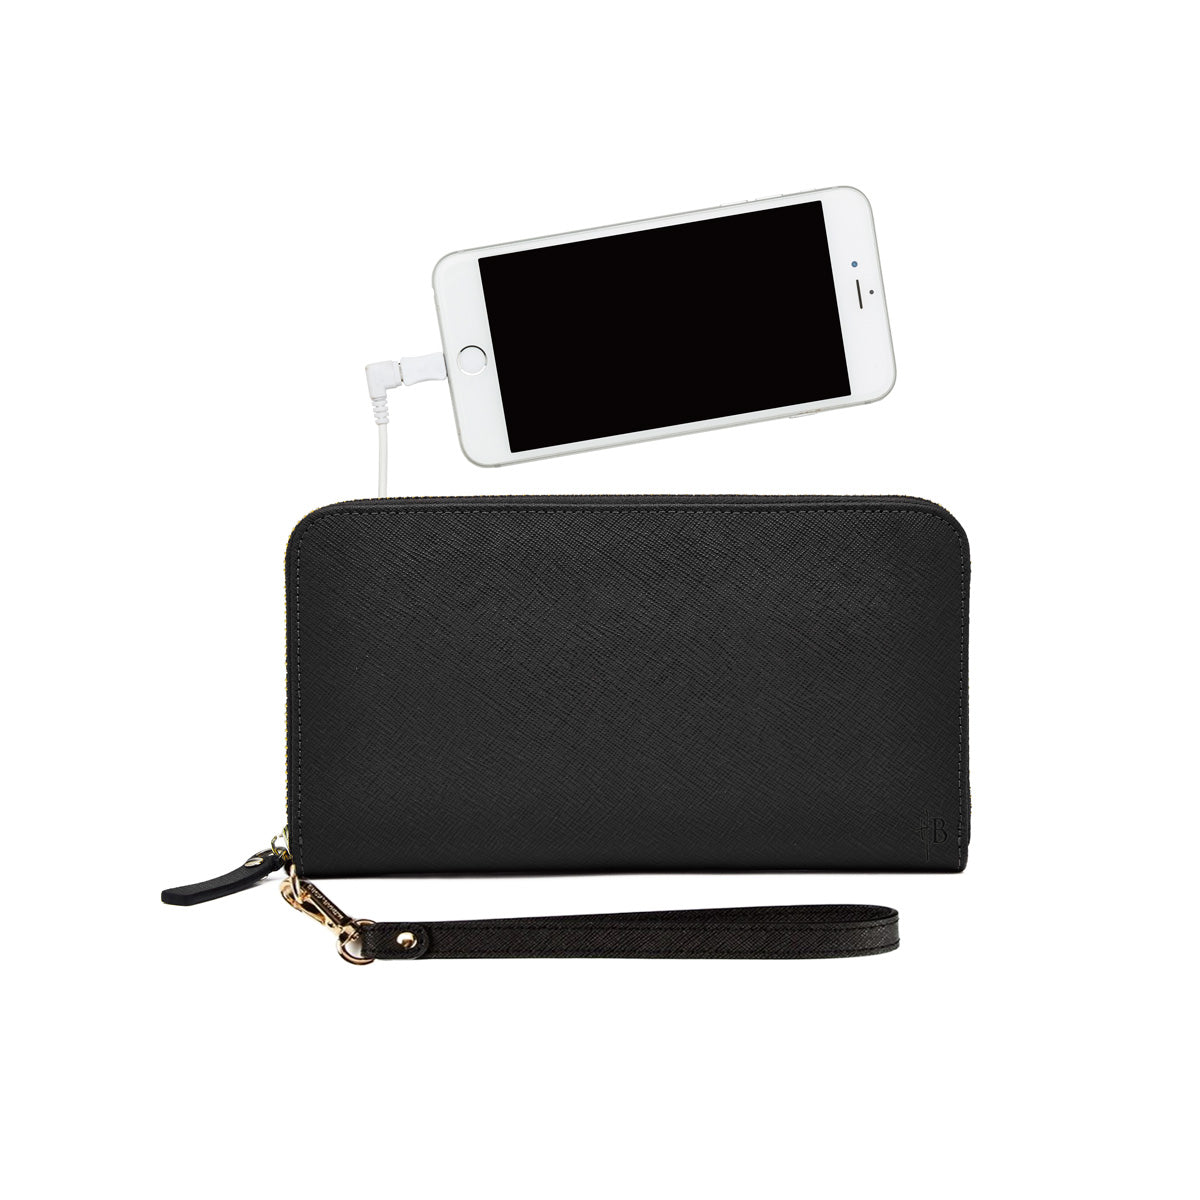 MightyPurse Zipper Wallet with built-in Phone Charger - Kukachoo